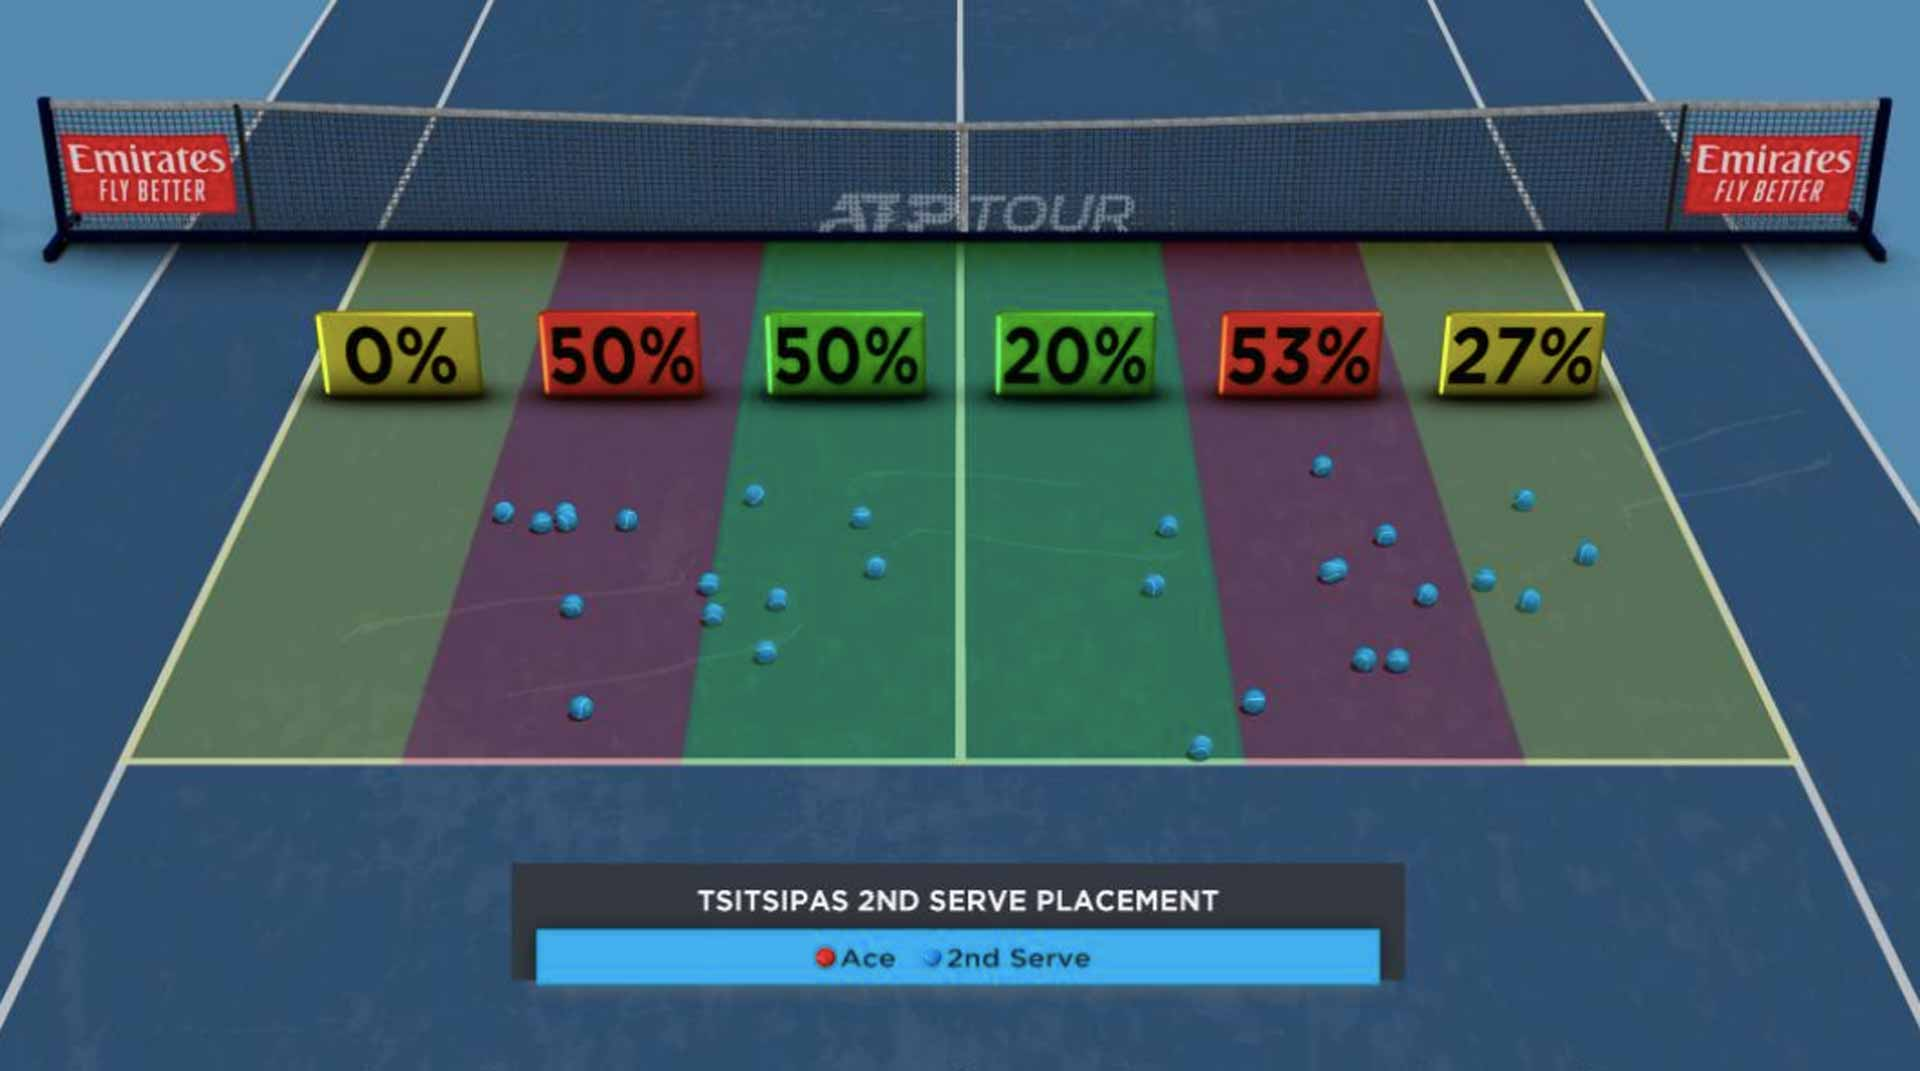 Tsitsipas Second-Serve Placement